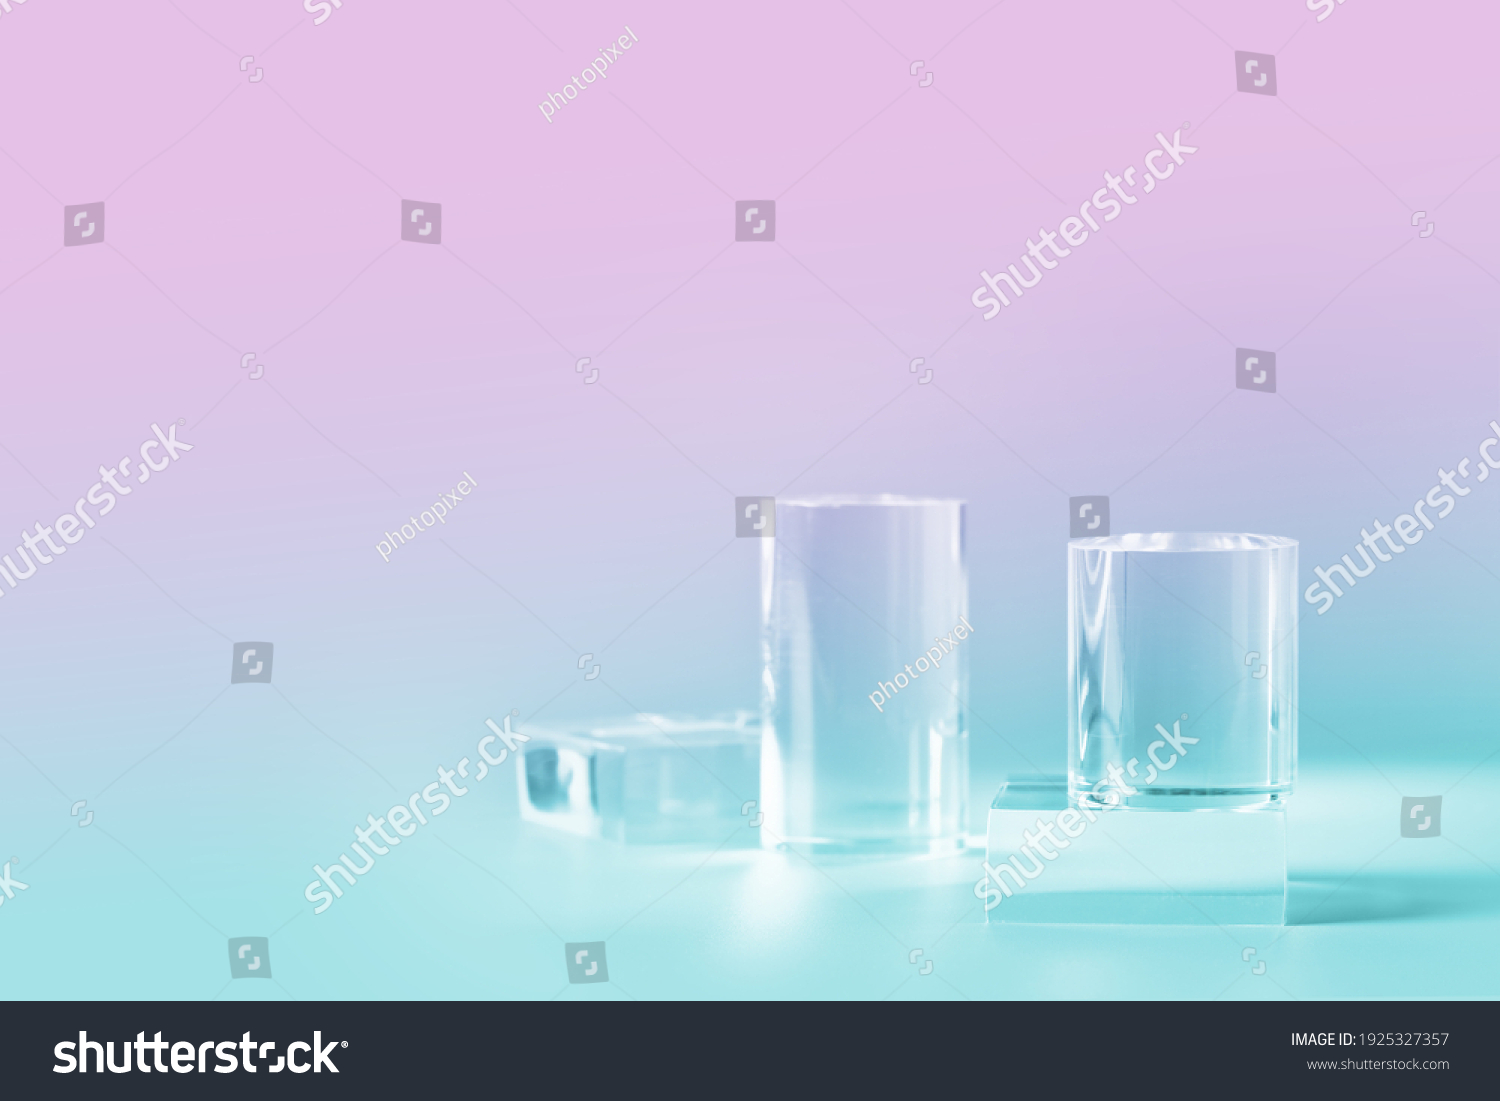 Acrylic empty podium for product presentation on nein pink and blue colored background, transparent geometric pedestals #1925327357